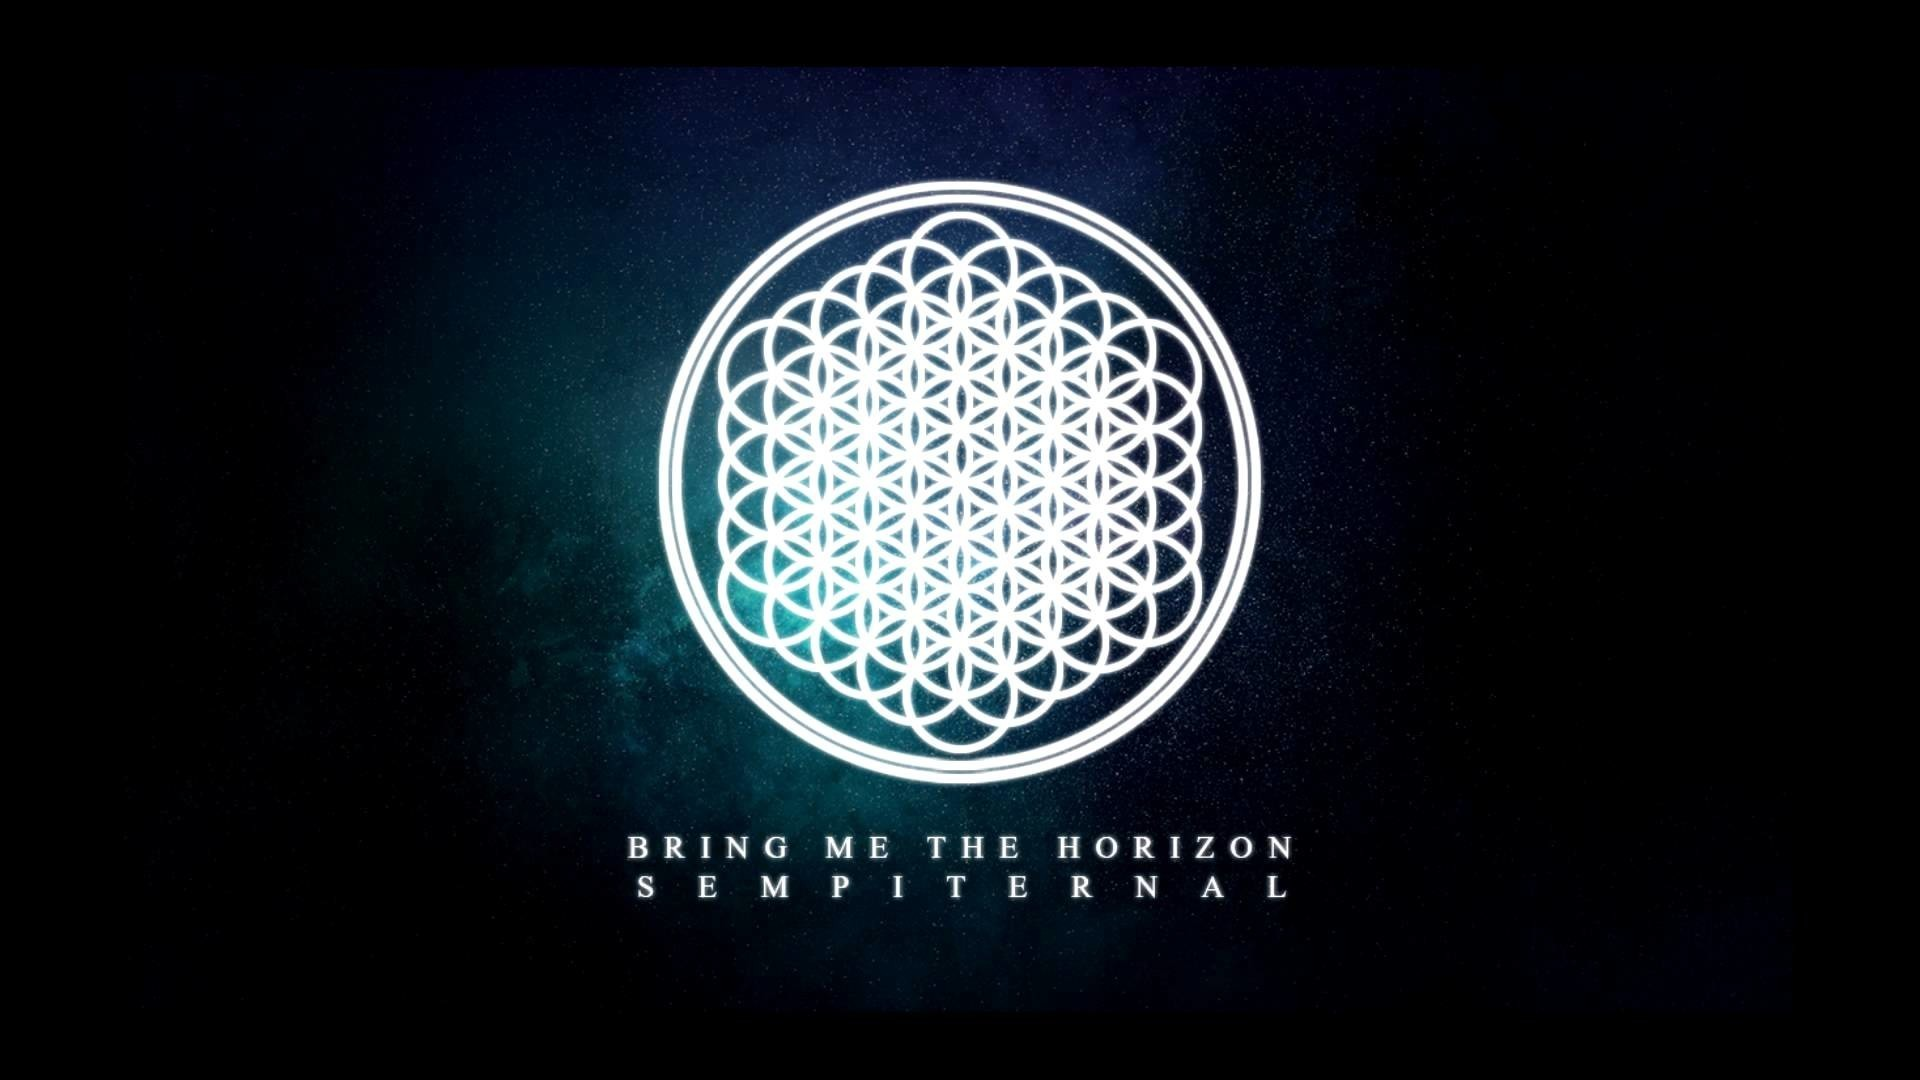 Bring - Hd Bring Me The Horizon , HD Wallpaper & Backgrounds